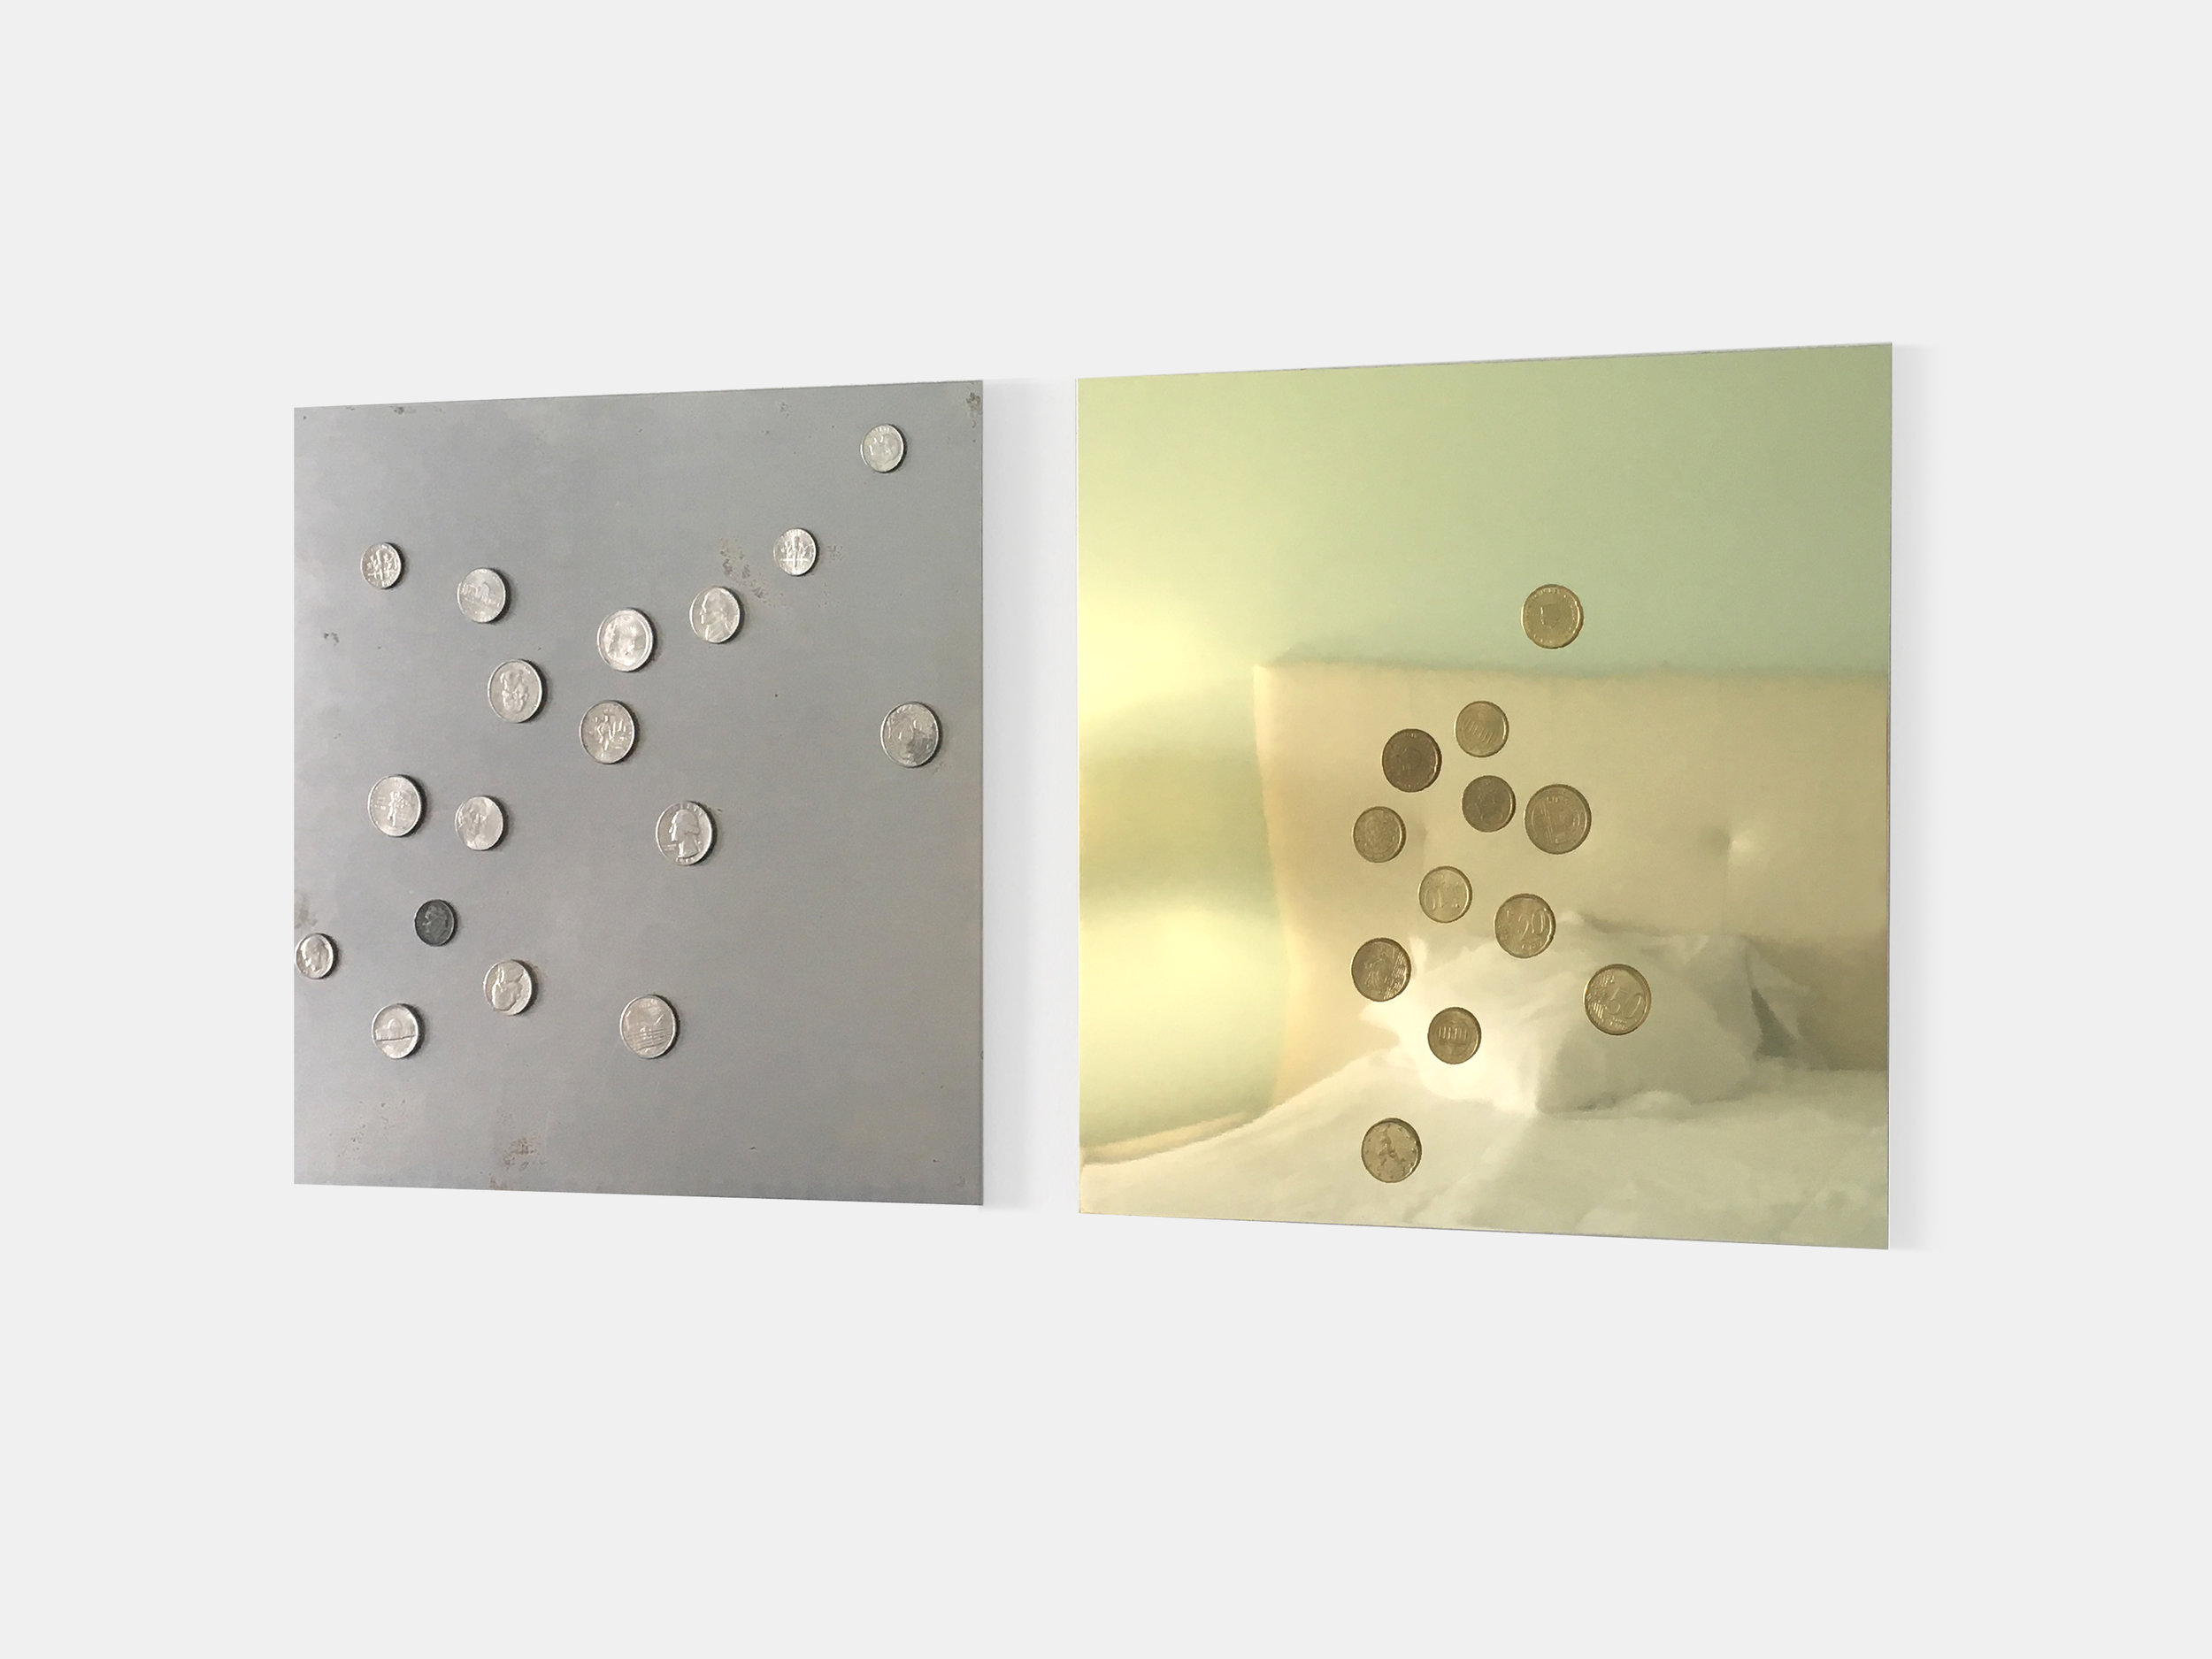 Mikkel Carl  Britney Survived 2007 – You Can Handle Today (1) , 2016 United States coin currency on milled steel sheet (left panel), Eurocents on anodized aluminum sheet (right panel) 12 x 12 inches (31 x 31 cm) each MC4